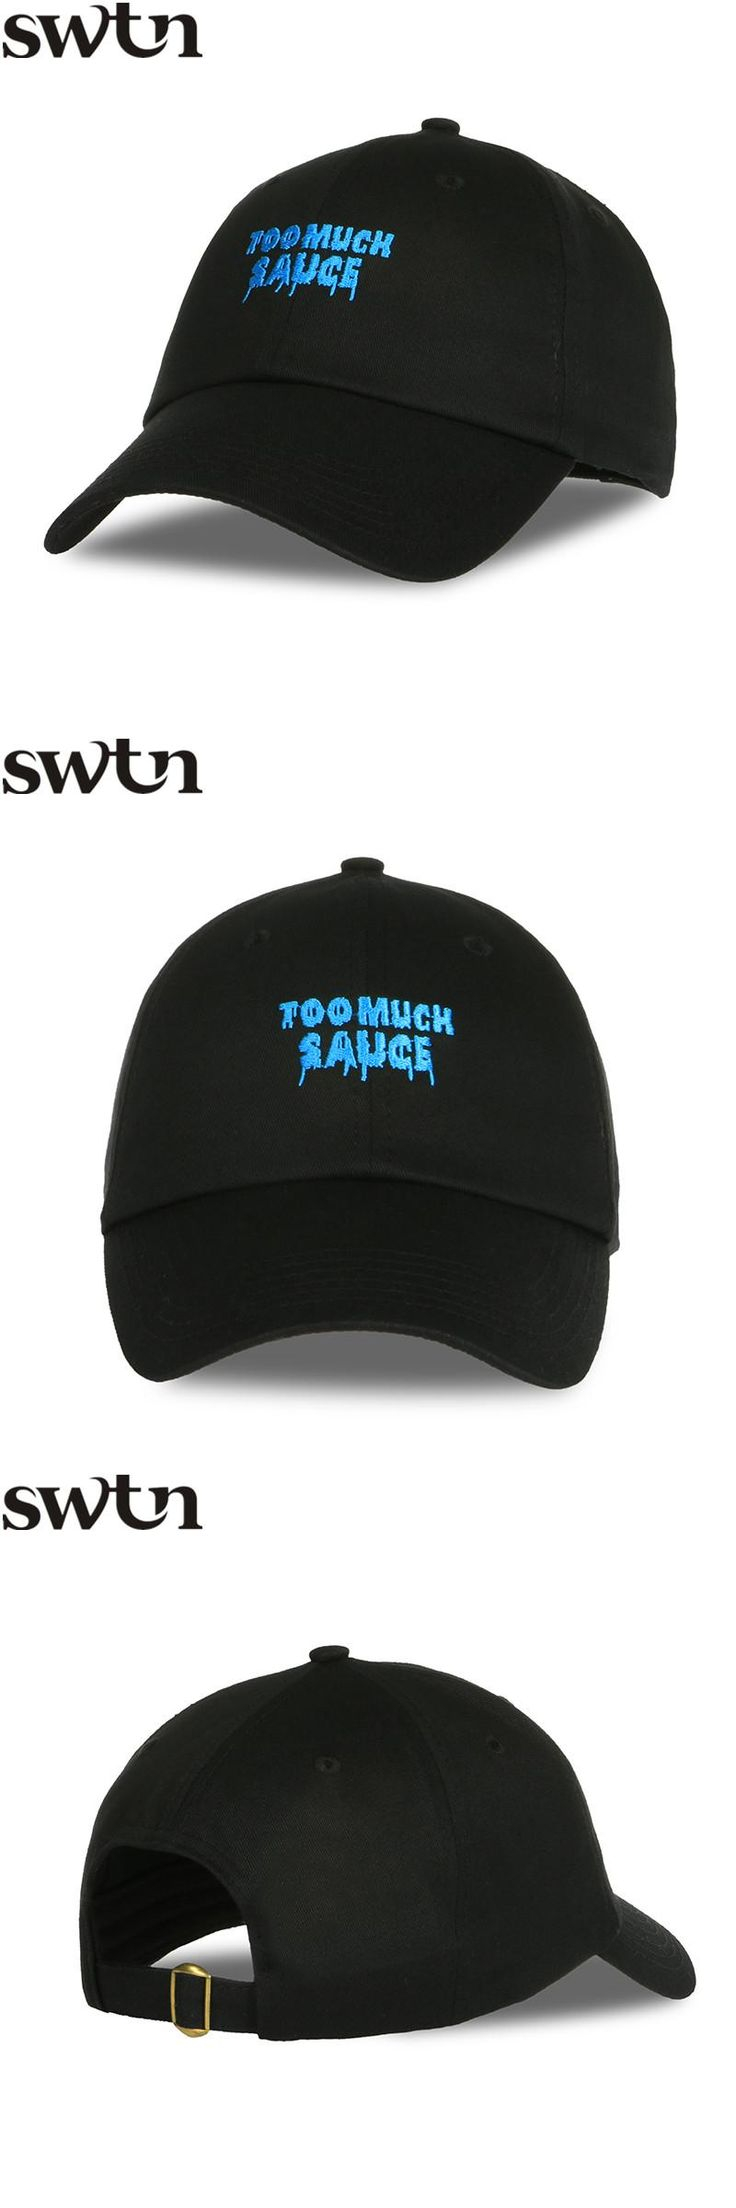 [Visit to Buy] SWTN Hot Too Much Sauce Letter Embroidery Vintage Girl Baseball Cap Women Dad Hat usa gorras mujer moda gorras mujer de marcas #Advertisement